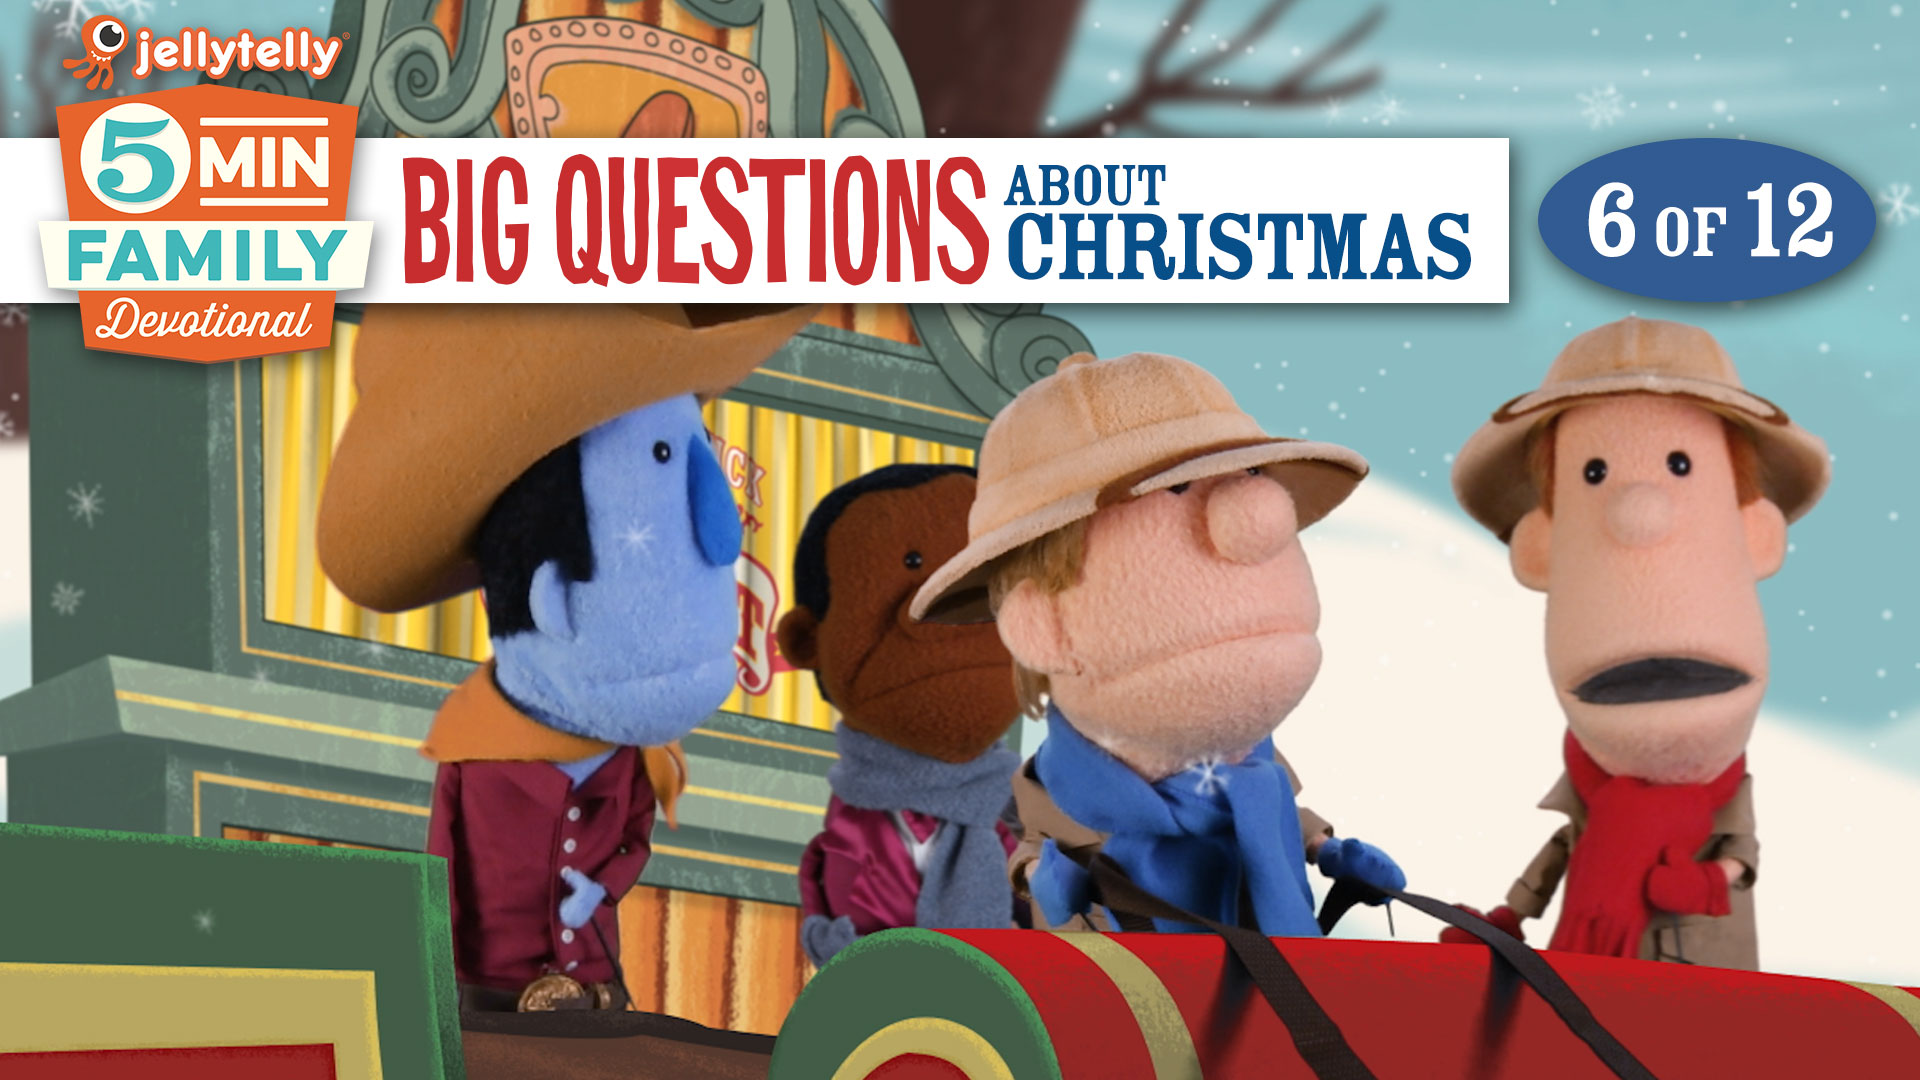 5mfd christmas 06 svod featured